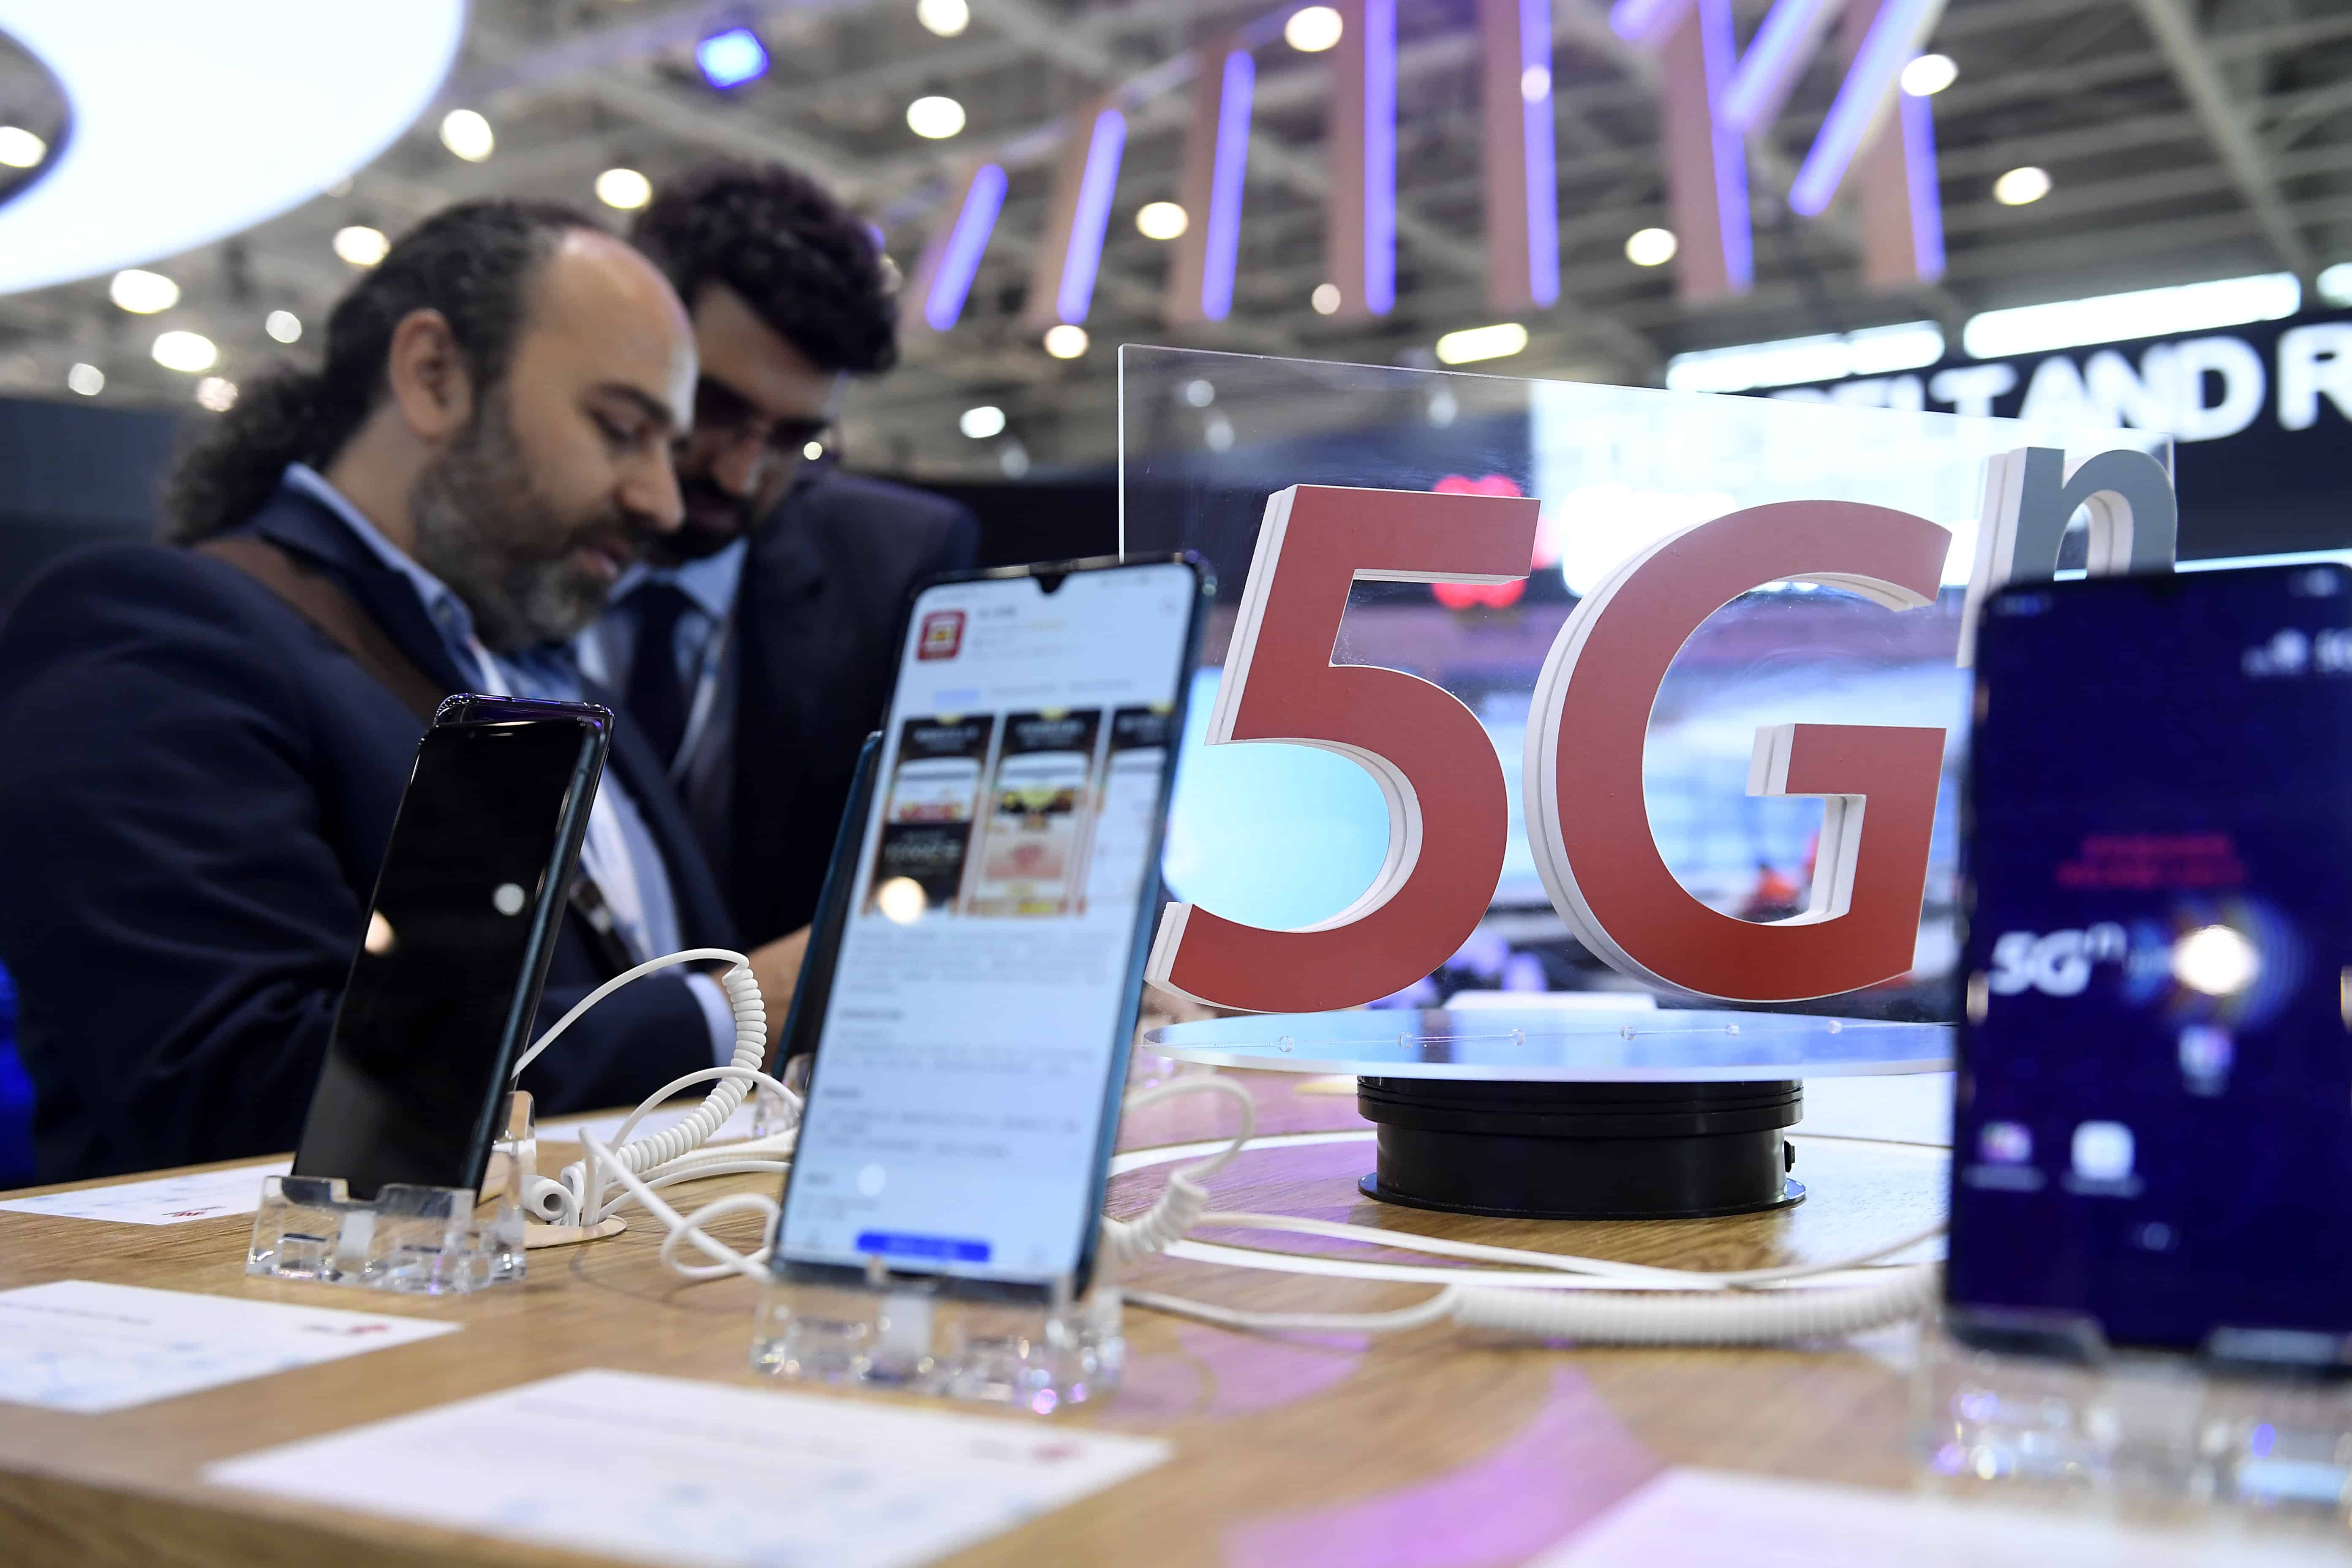 Hungary aims to introduce 5G developments without delay